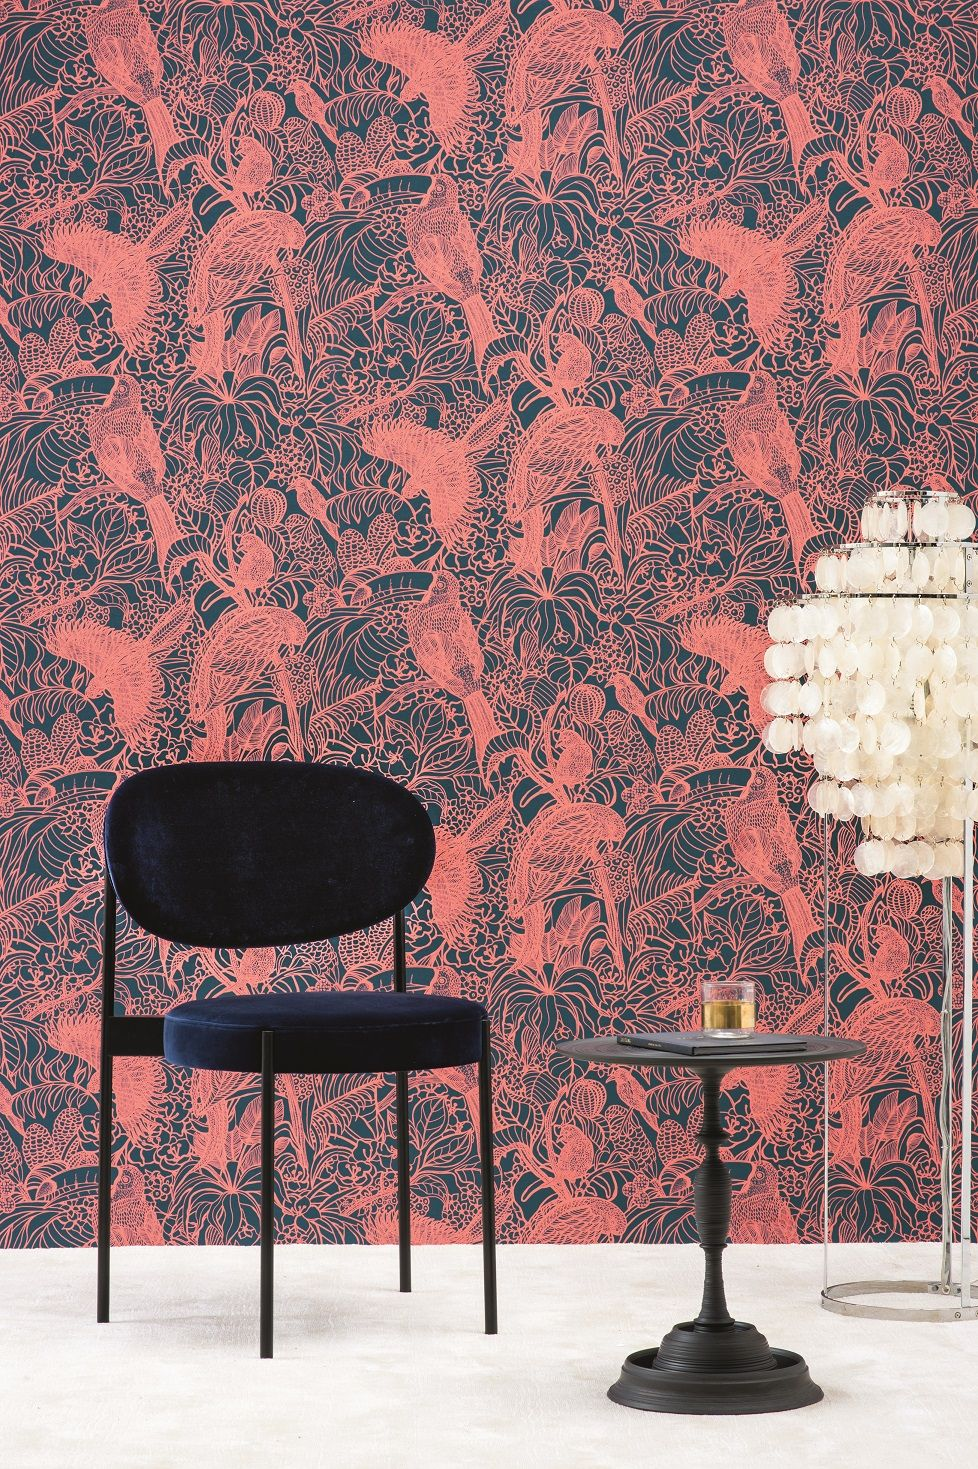 costa rica wallpaper by la maison pierre frey welcome to the jungle pinterest. Black Bedroom Furniture Sets. Home Design Ideas